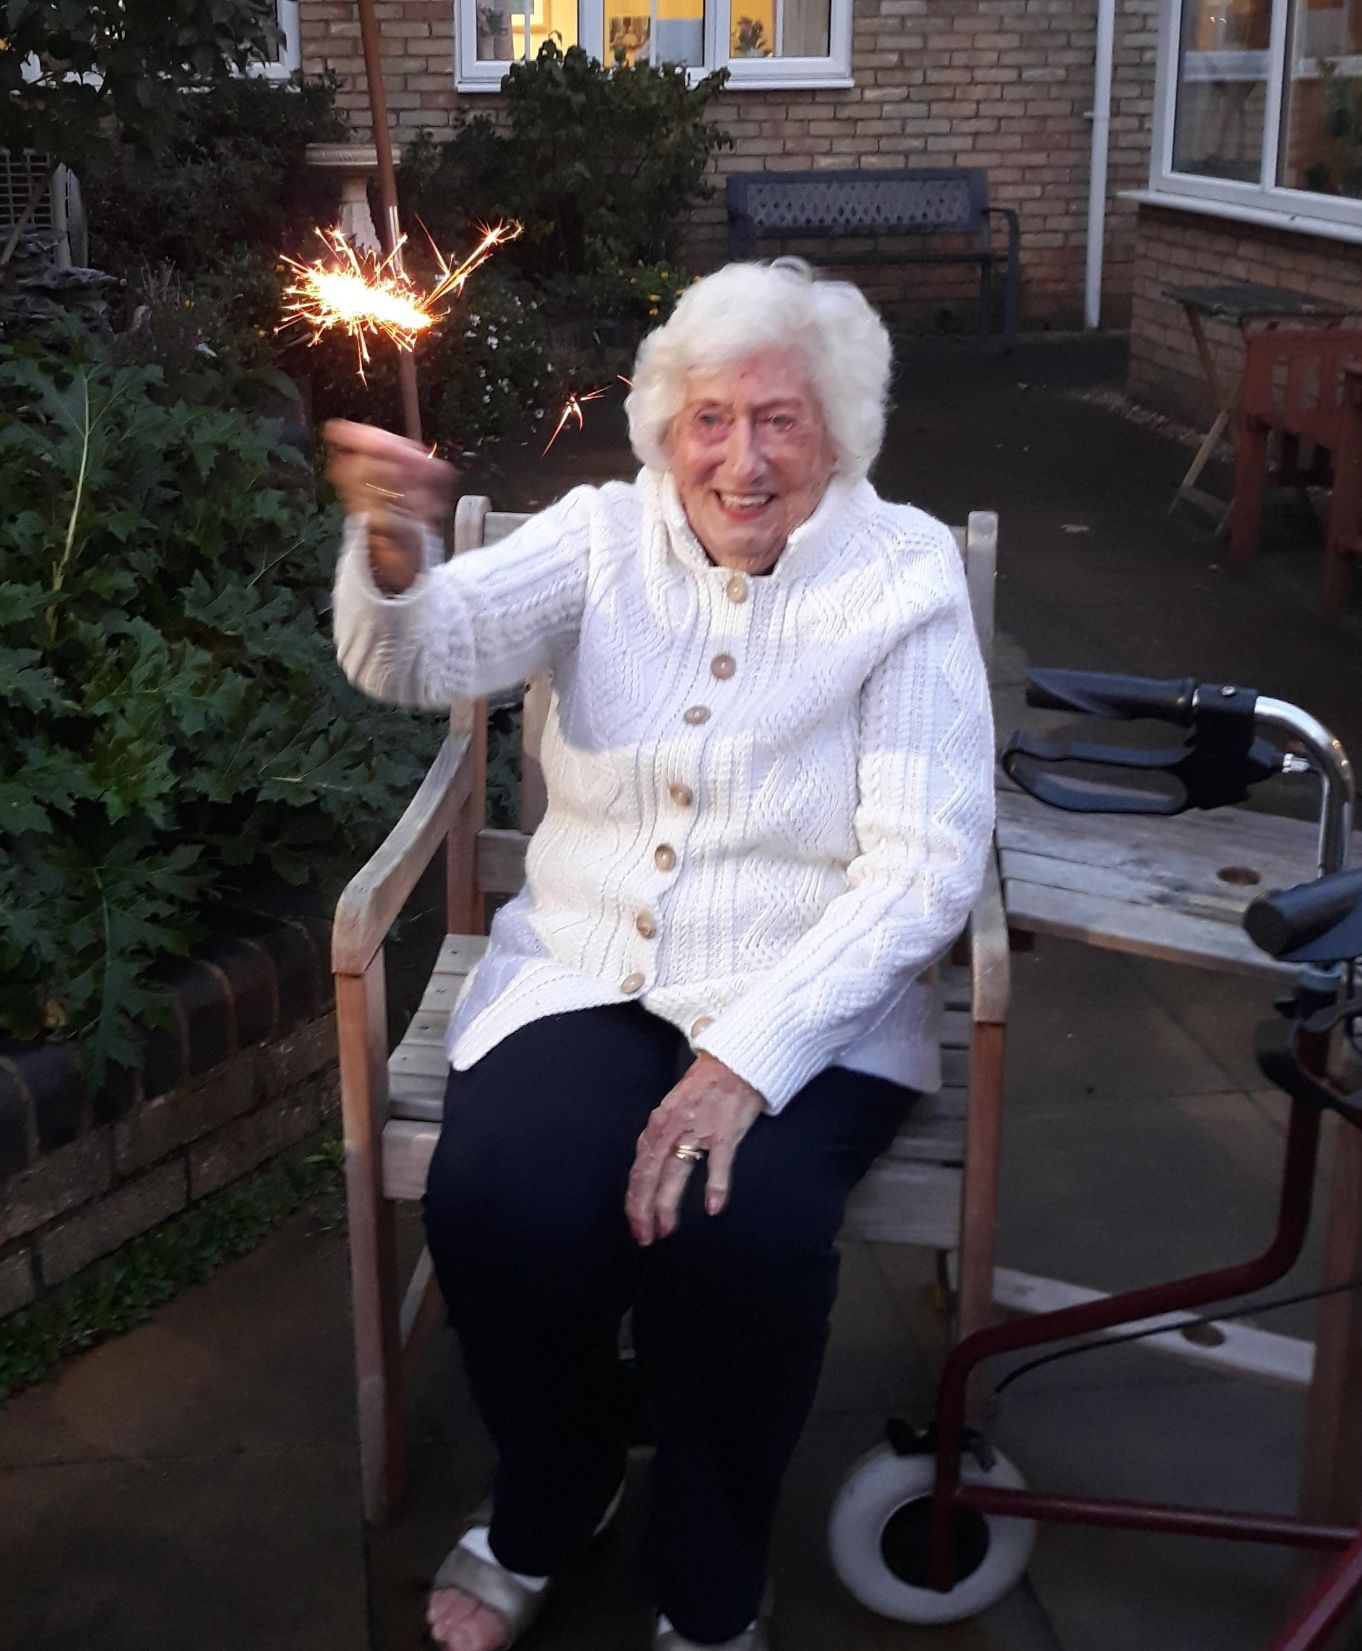 Highfield Care Home in Ware celebrate Guy Fawkes Night